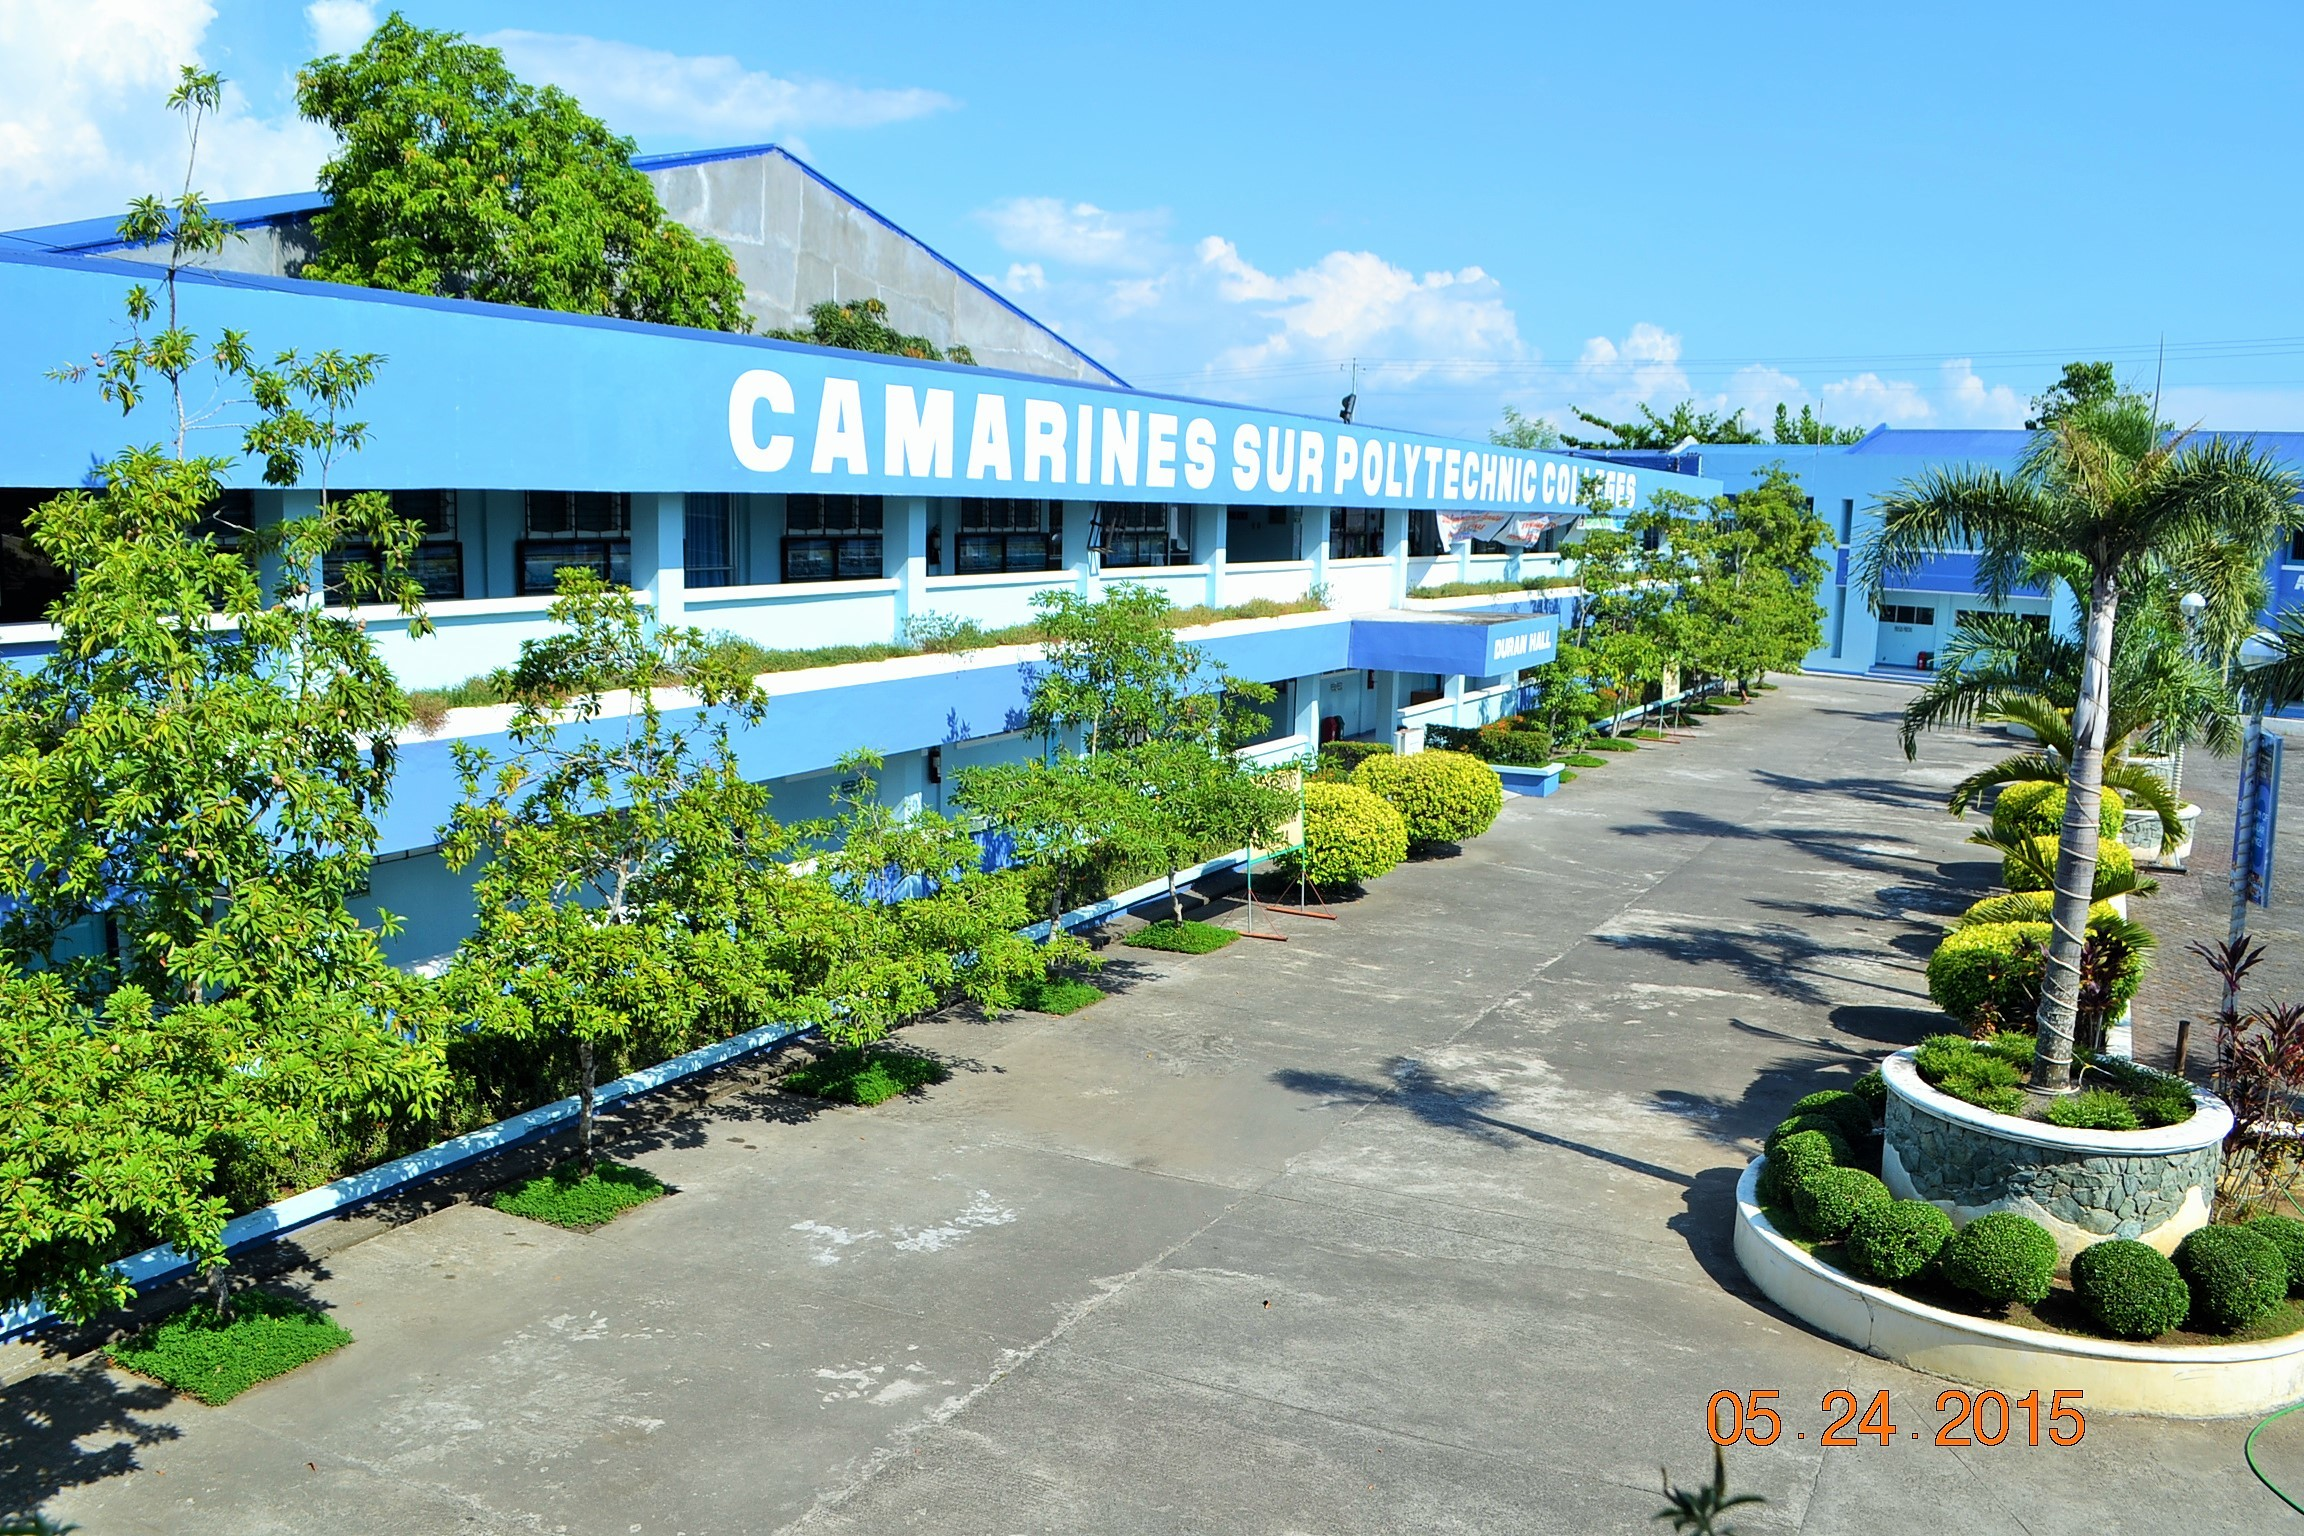 Camarines Sur Polytechnic Colleges | LinkedIn